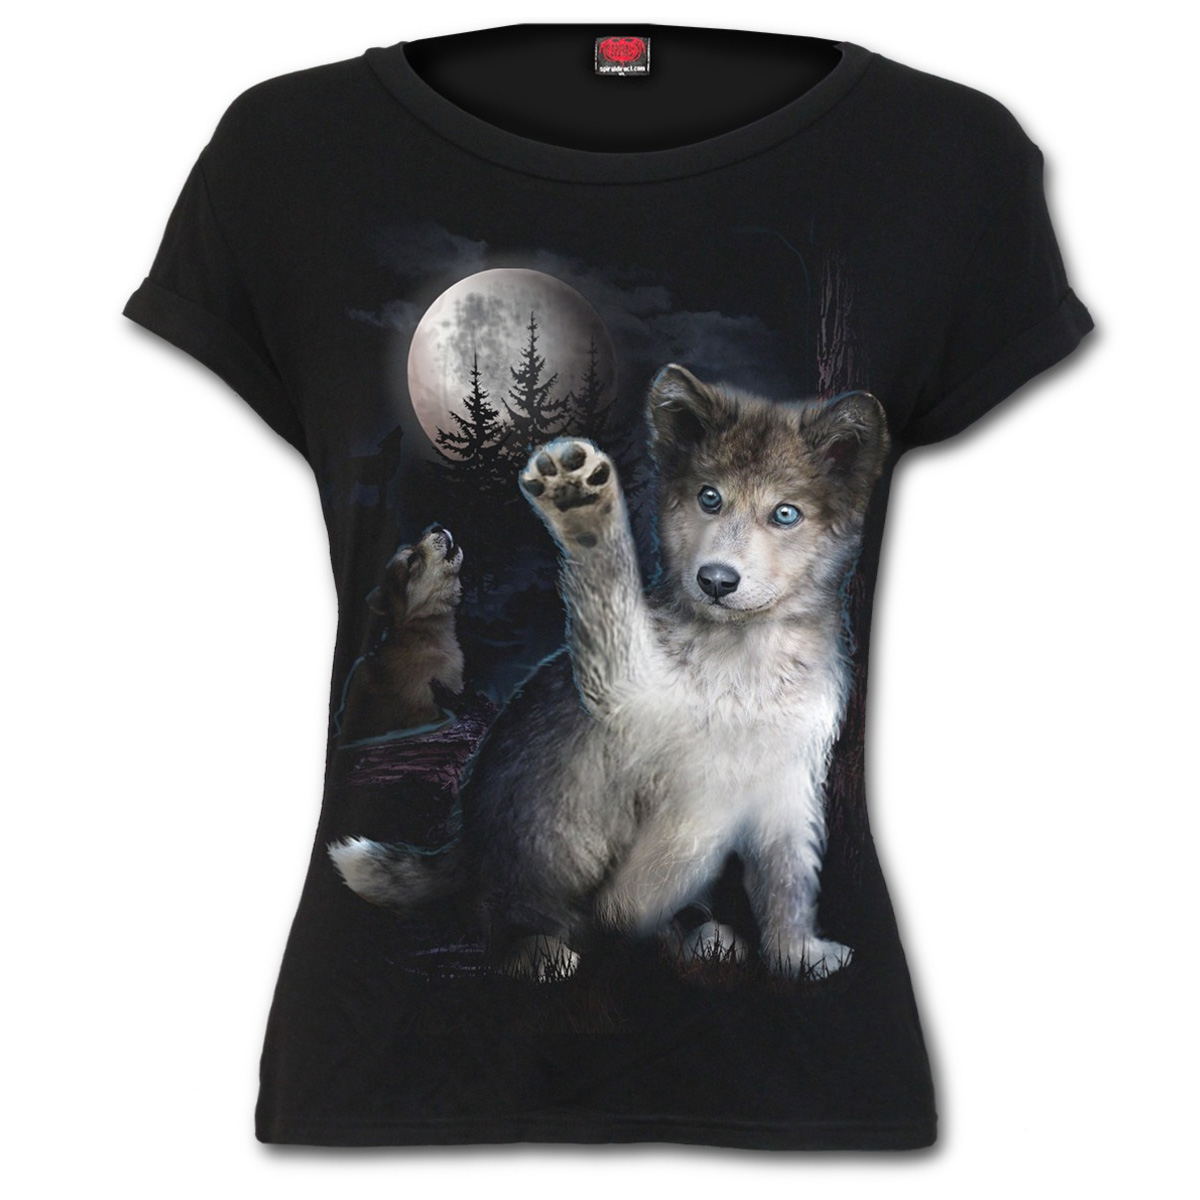 SPIRAL-DIRECT-Ladies-Black-Goth-Moon-WOLF-PUPPY-T-Shirt-Top-All-Sizes thumbnail 7